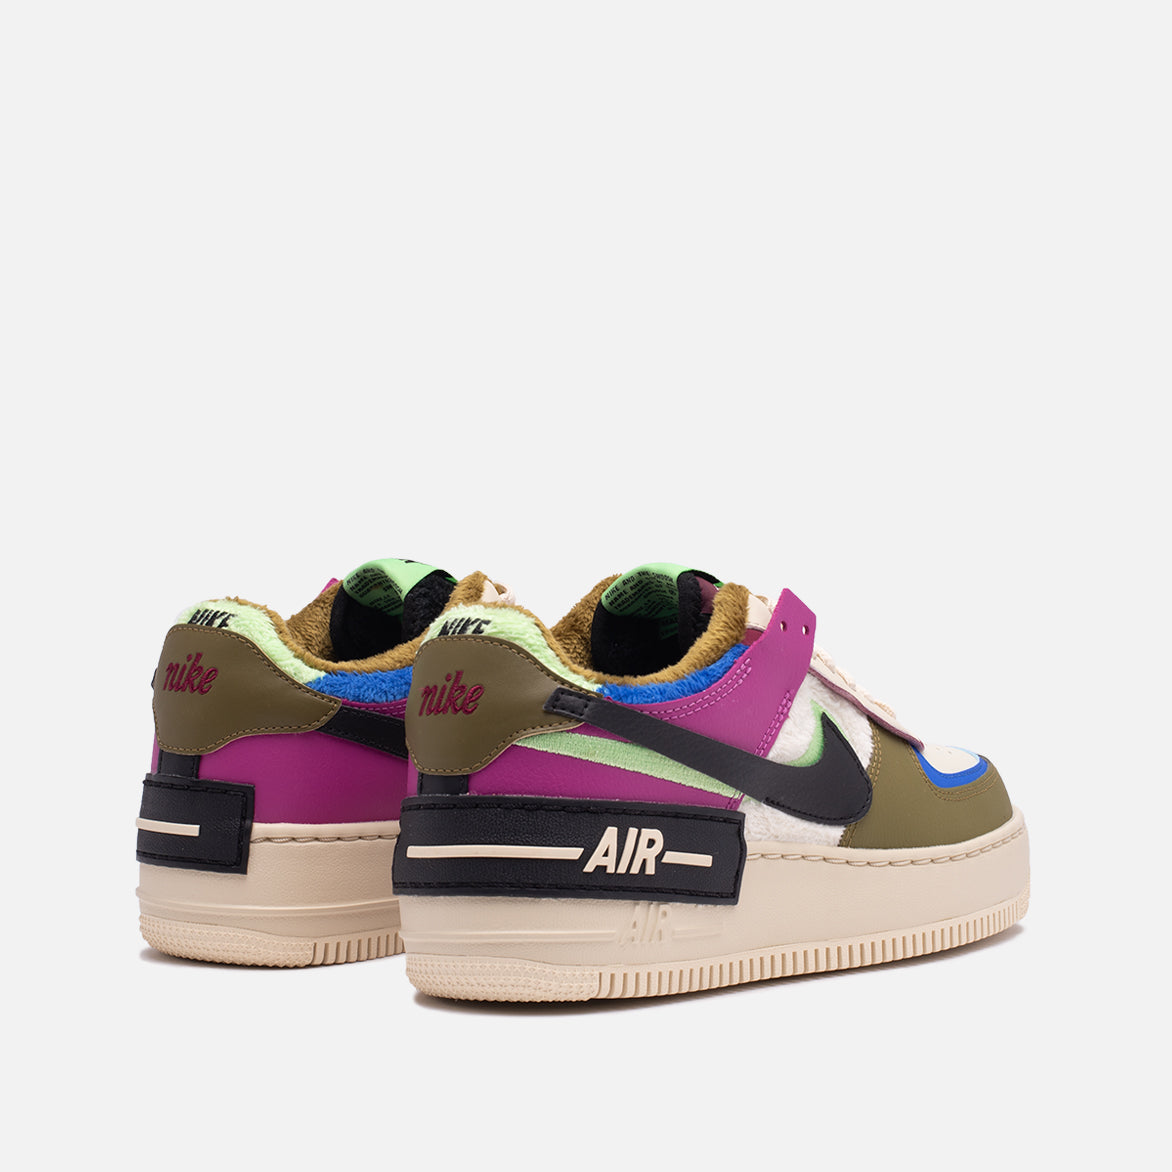 "WMNS AIR FORCE 1 SHADOW SE ""CACTUS FLOWER"""